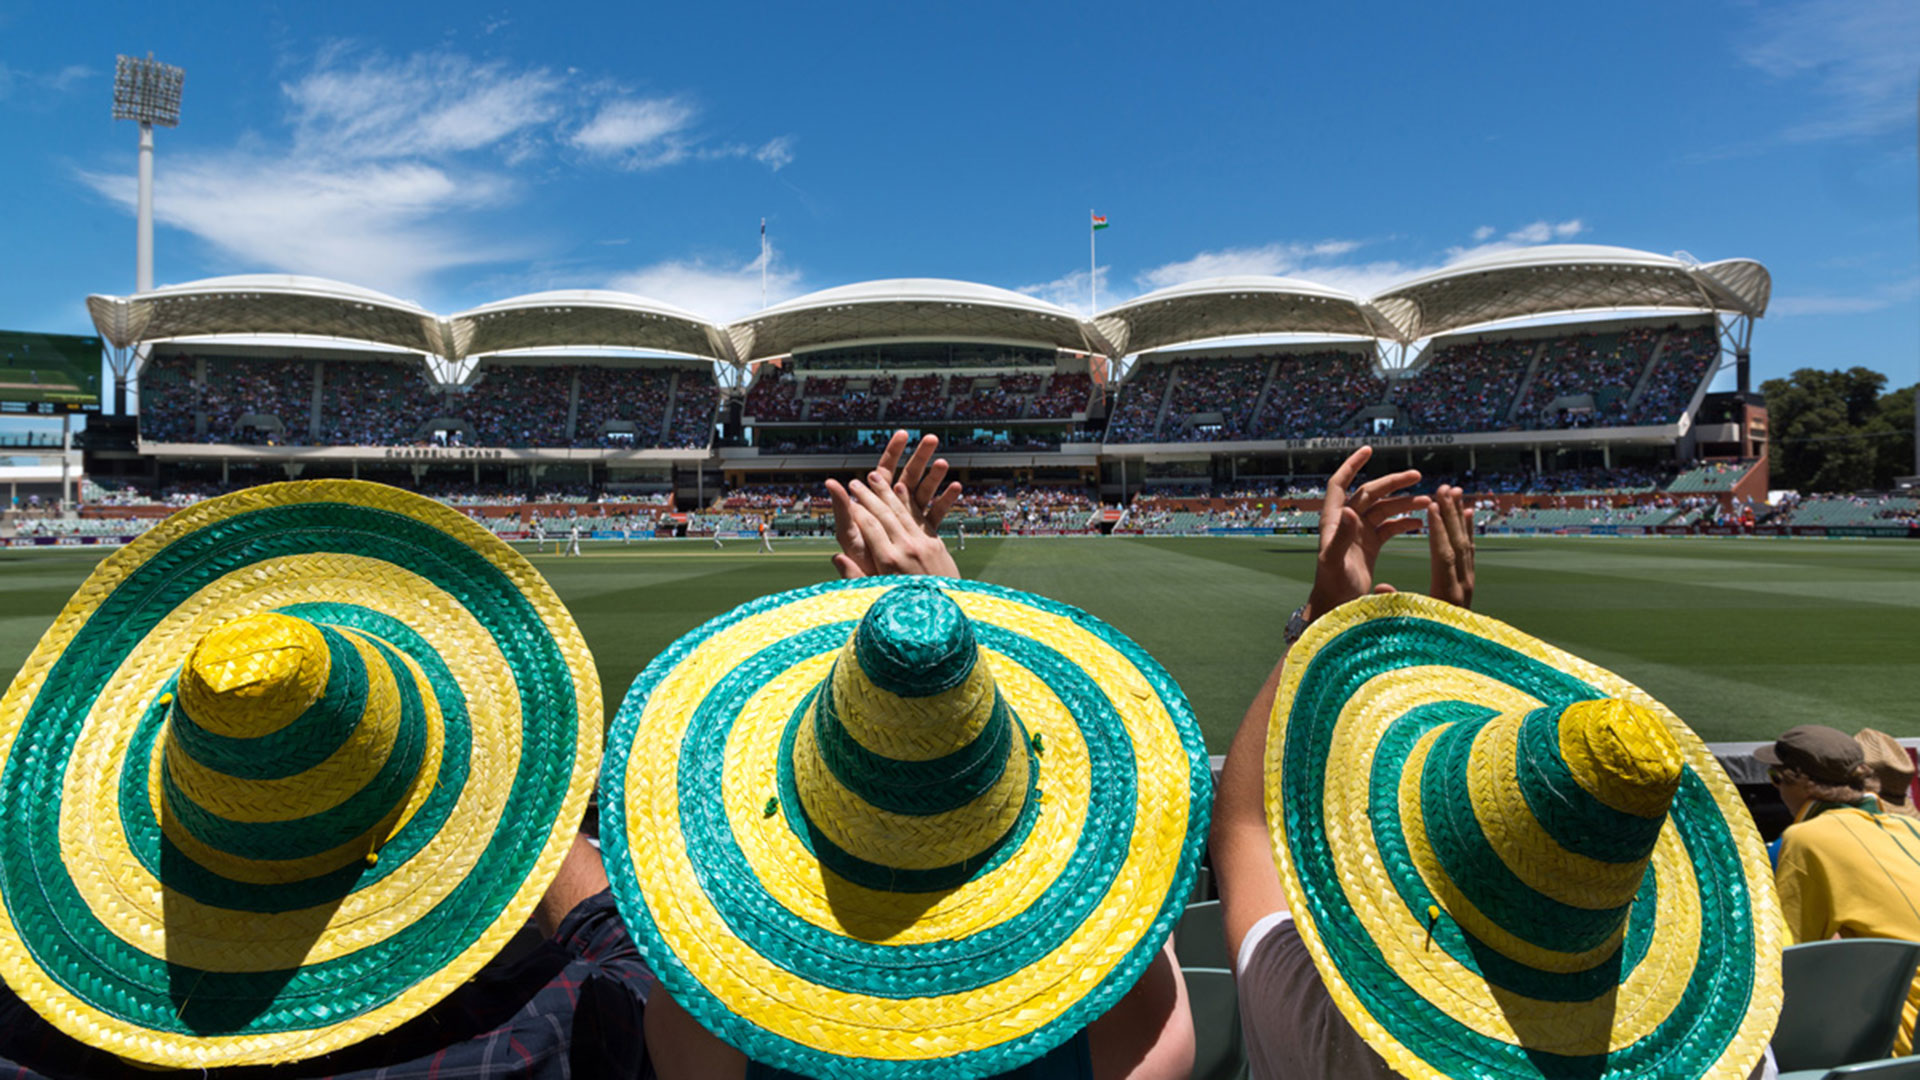 Fans watching the ODI at Adelaide Oval